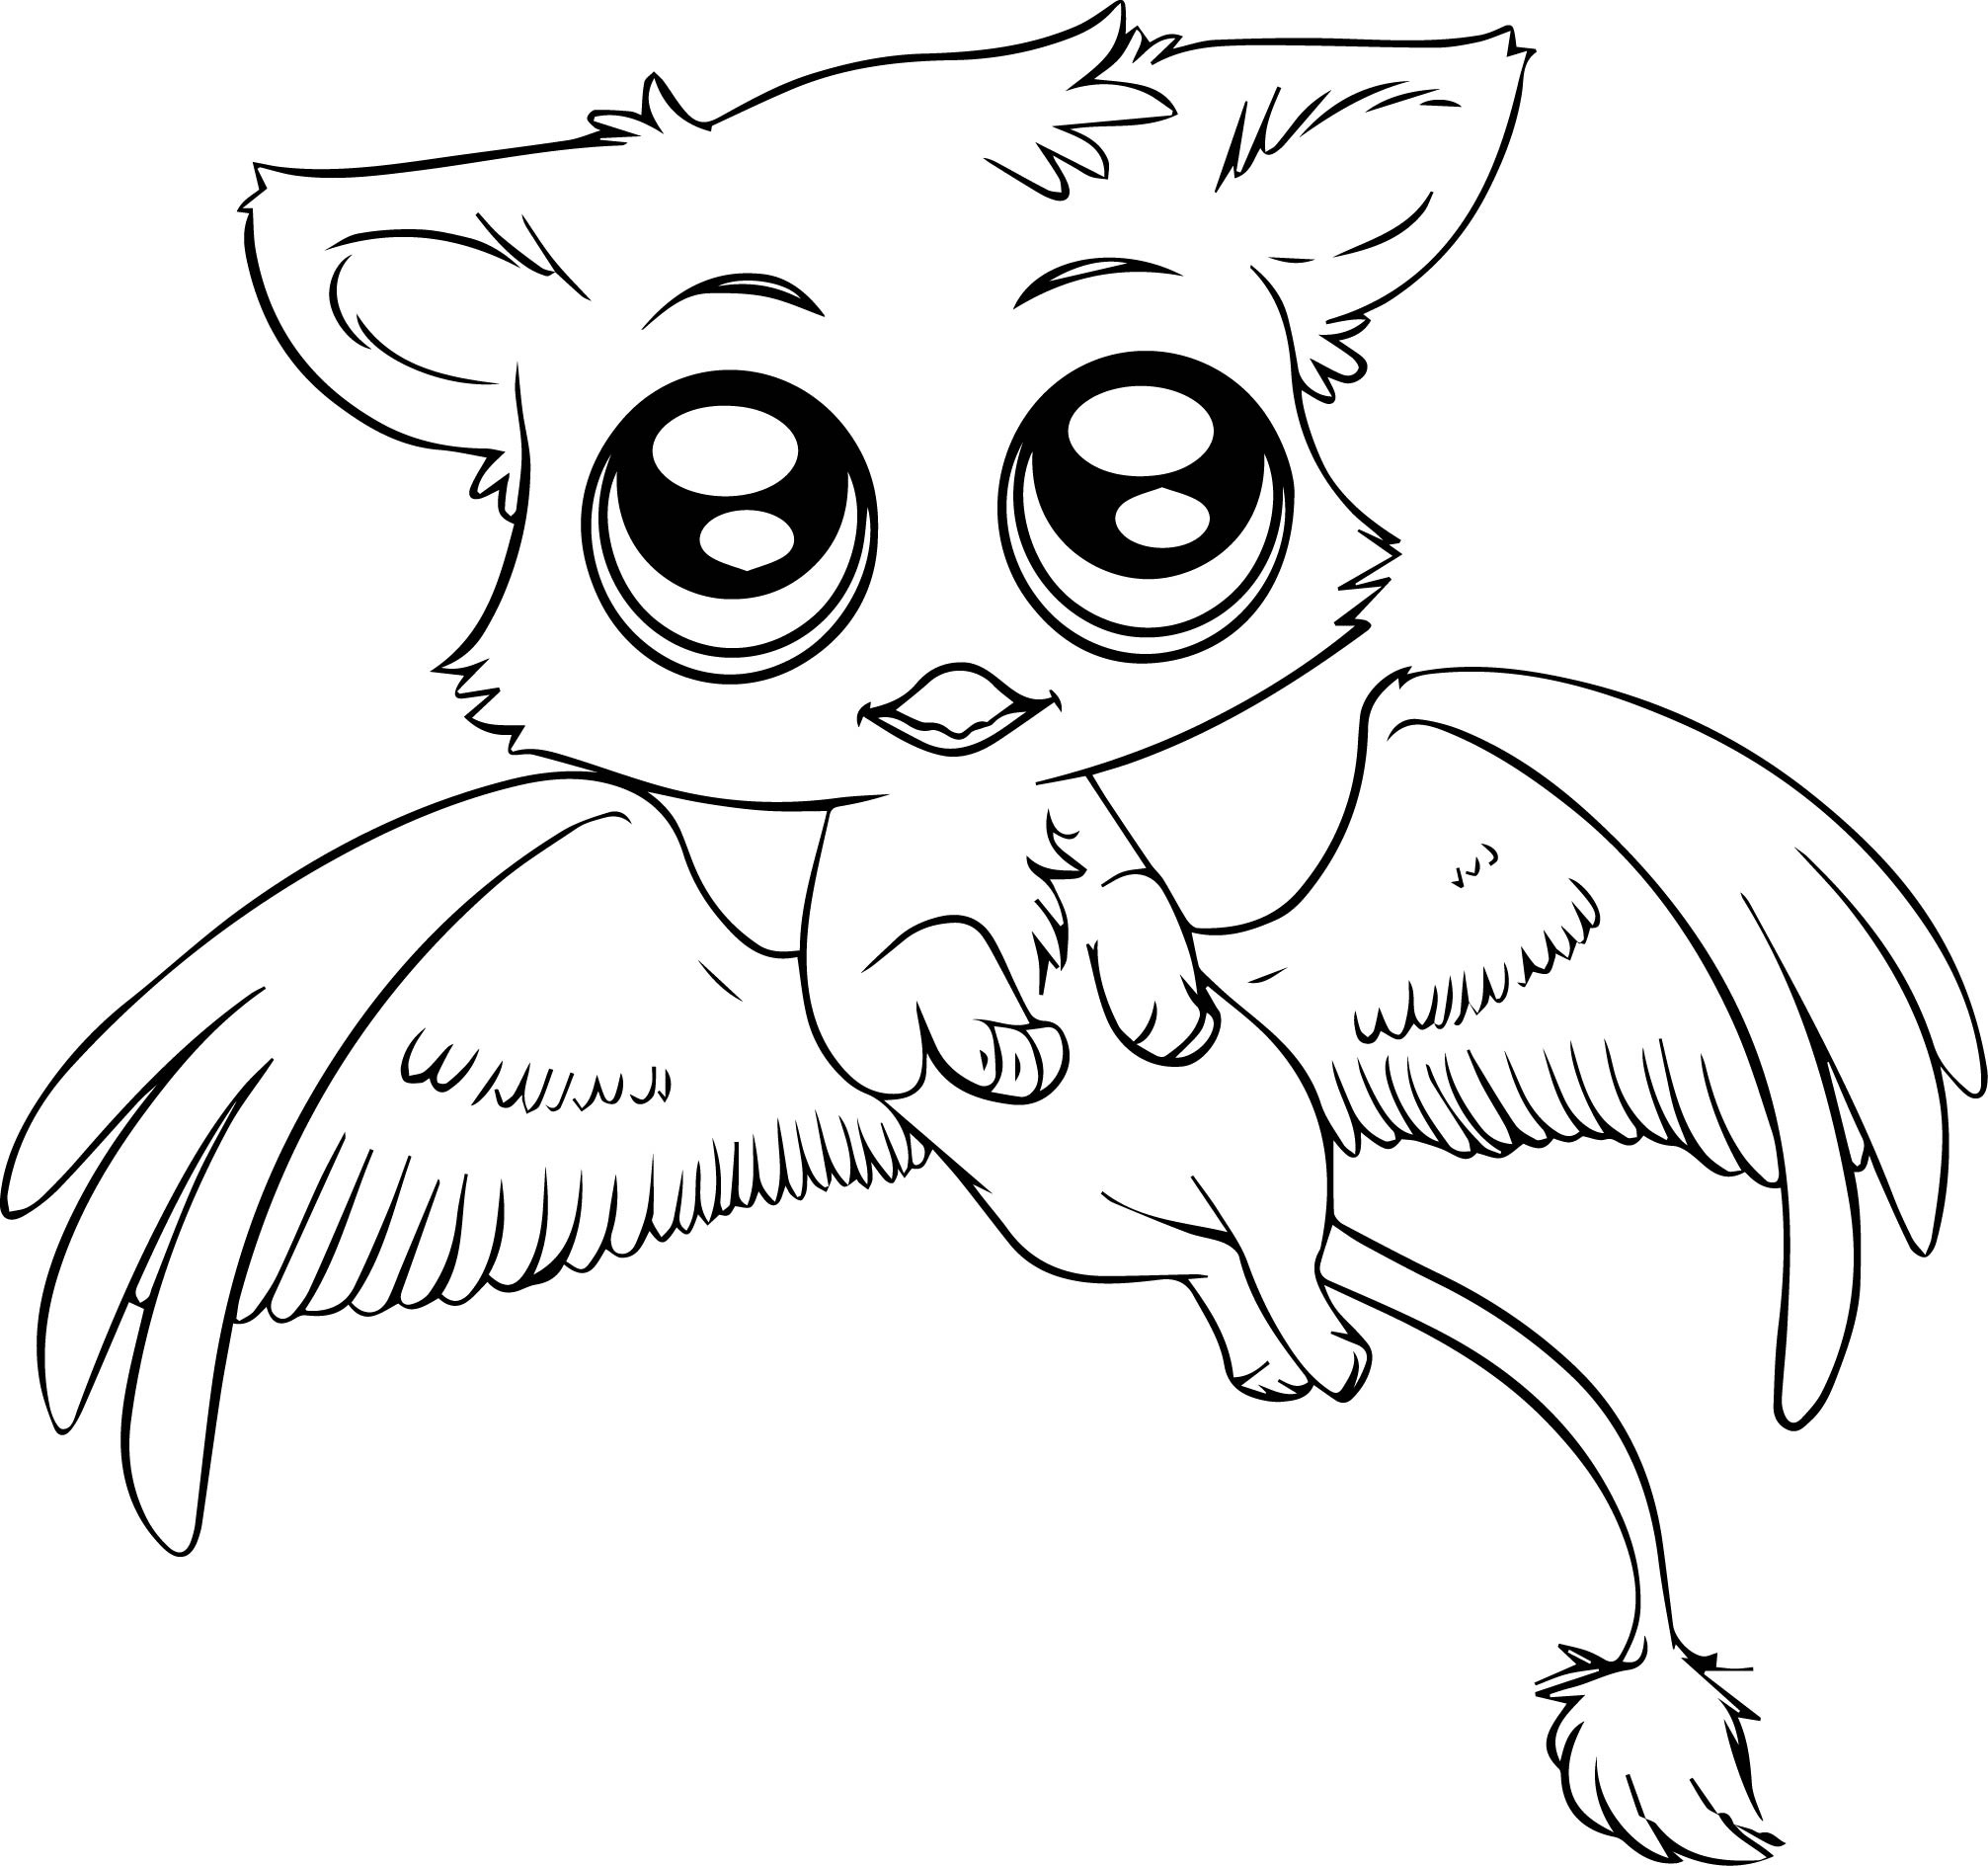 Free Baby Animal Coloring Pages At Getdrawings | Free For - Free Printable Pictures Of Baby Animals